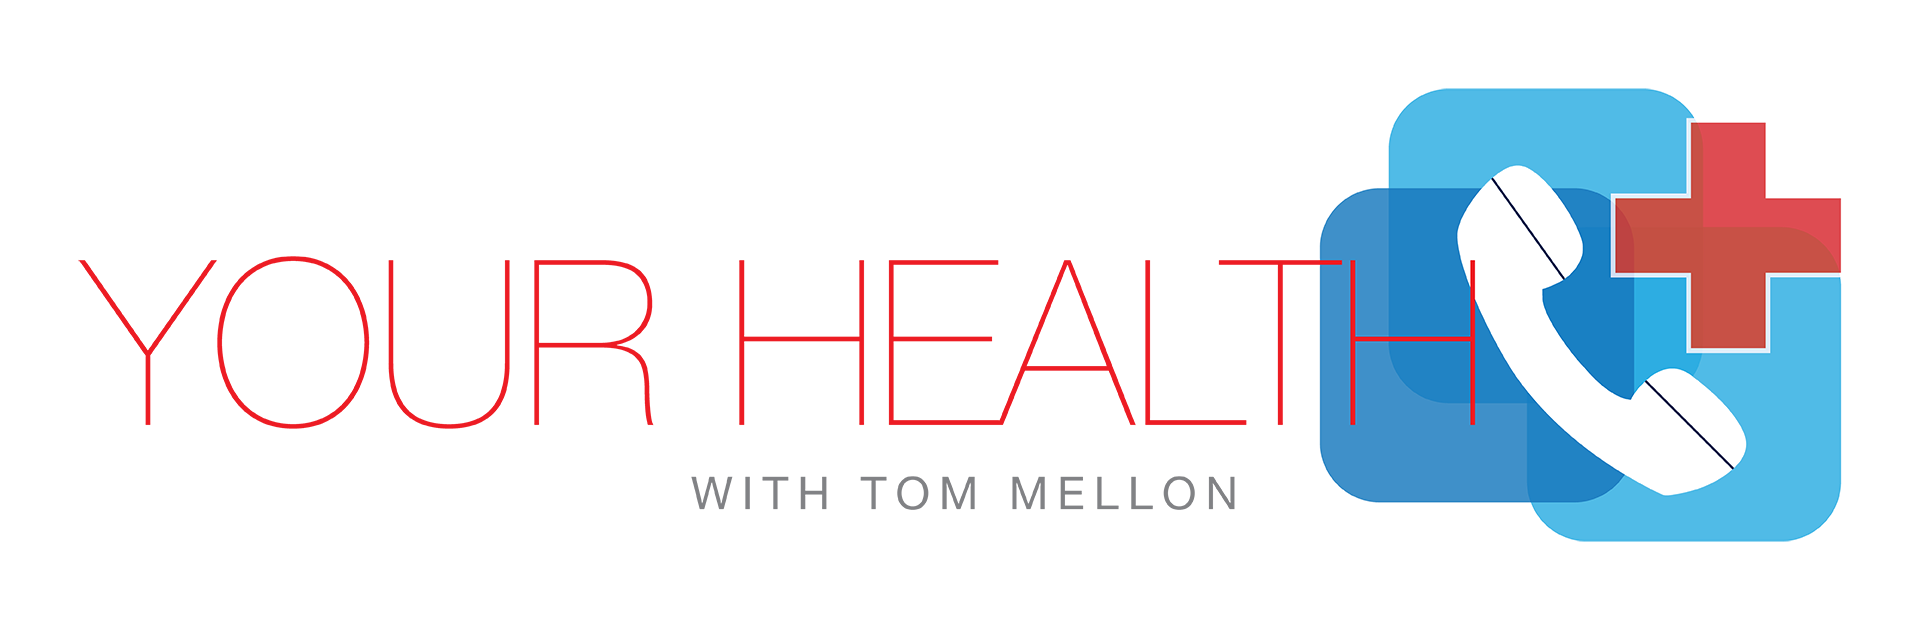 Your Health with Tom Mellon on WBCB